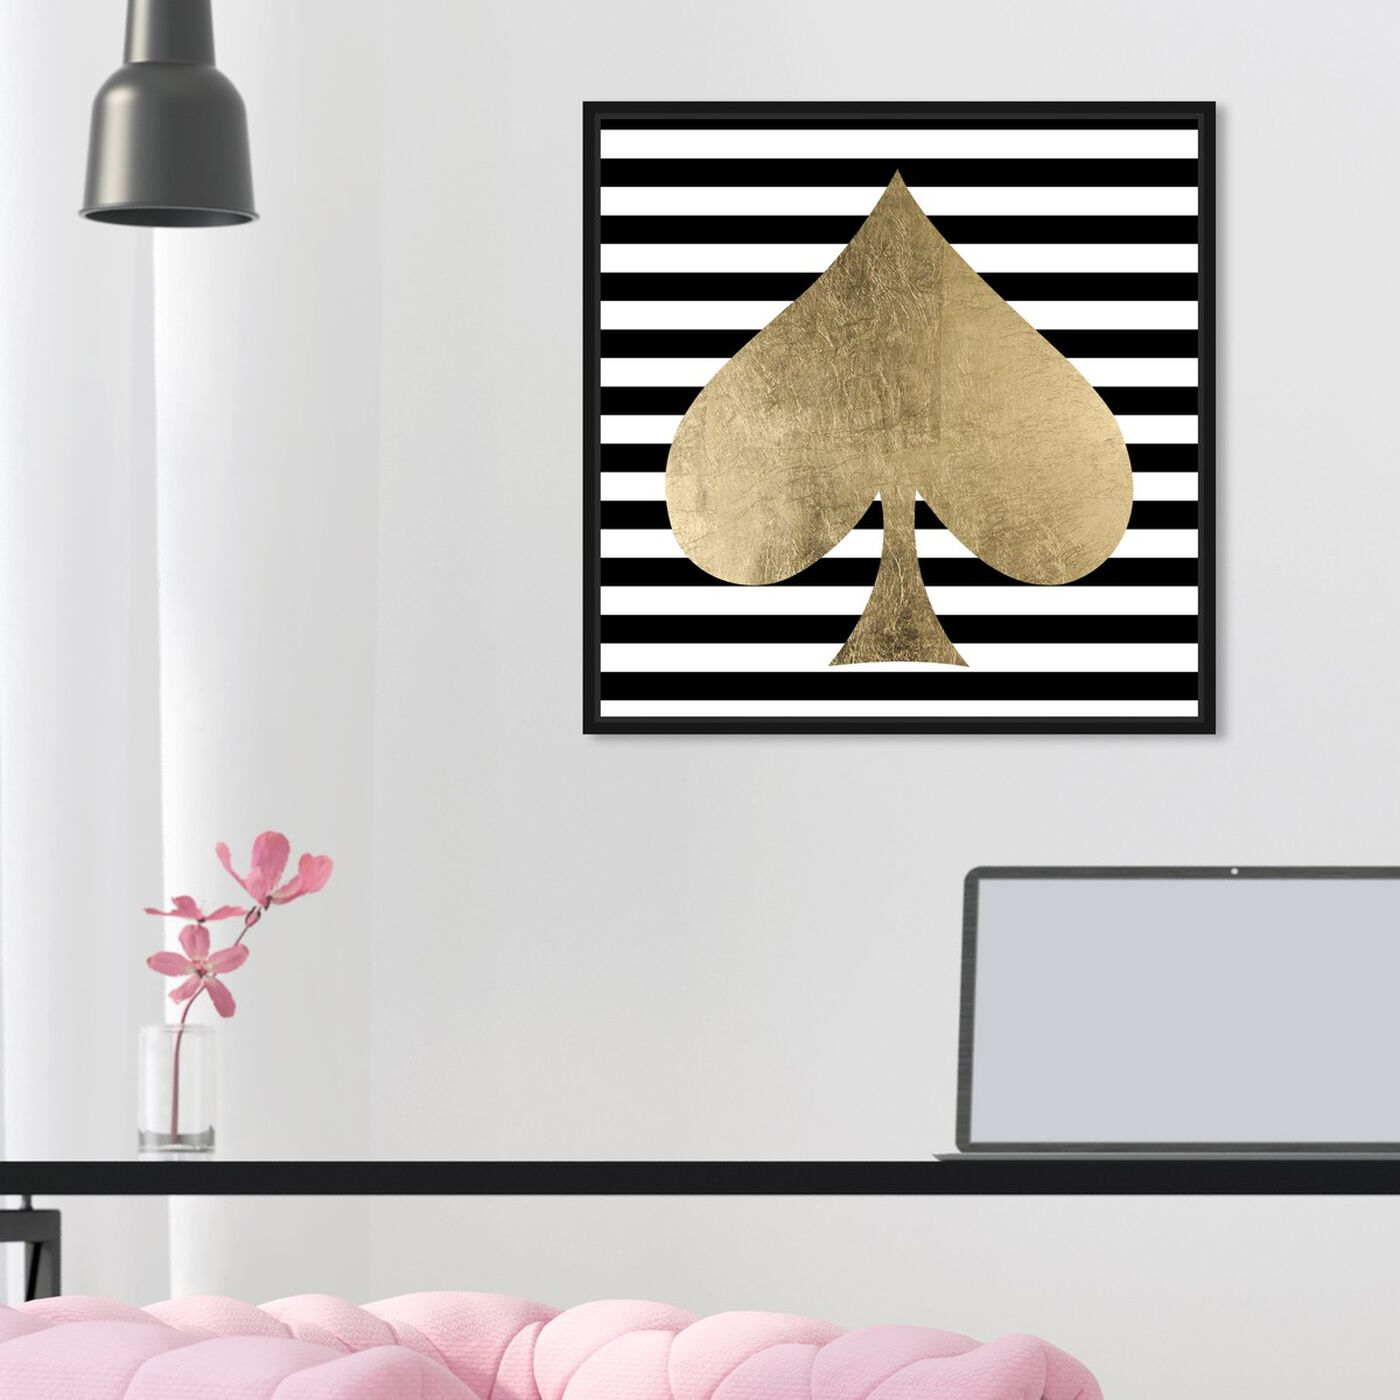 Hanging view of The Spade featuring fashion and glam and fashion art.